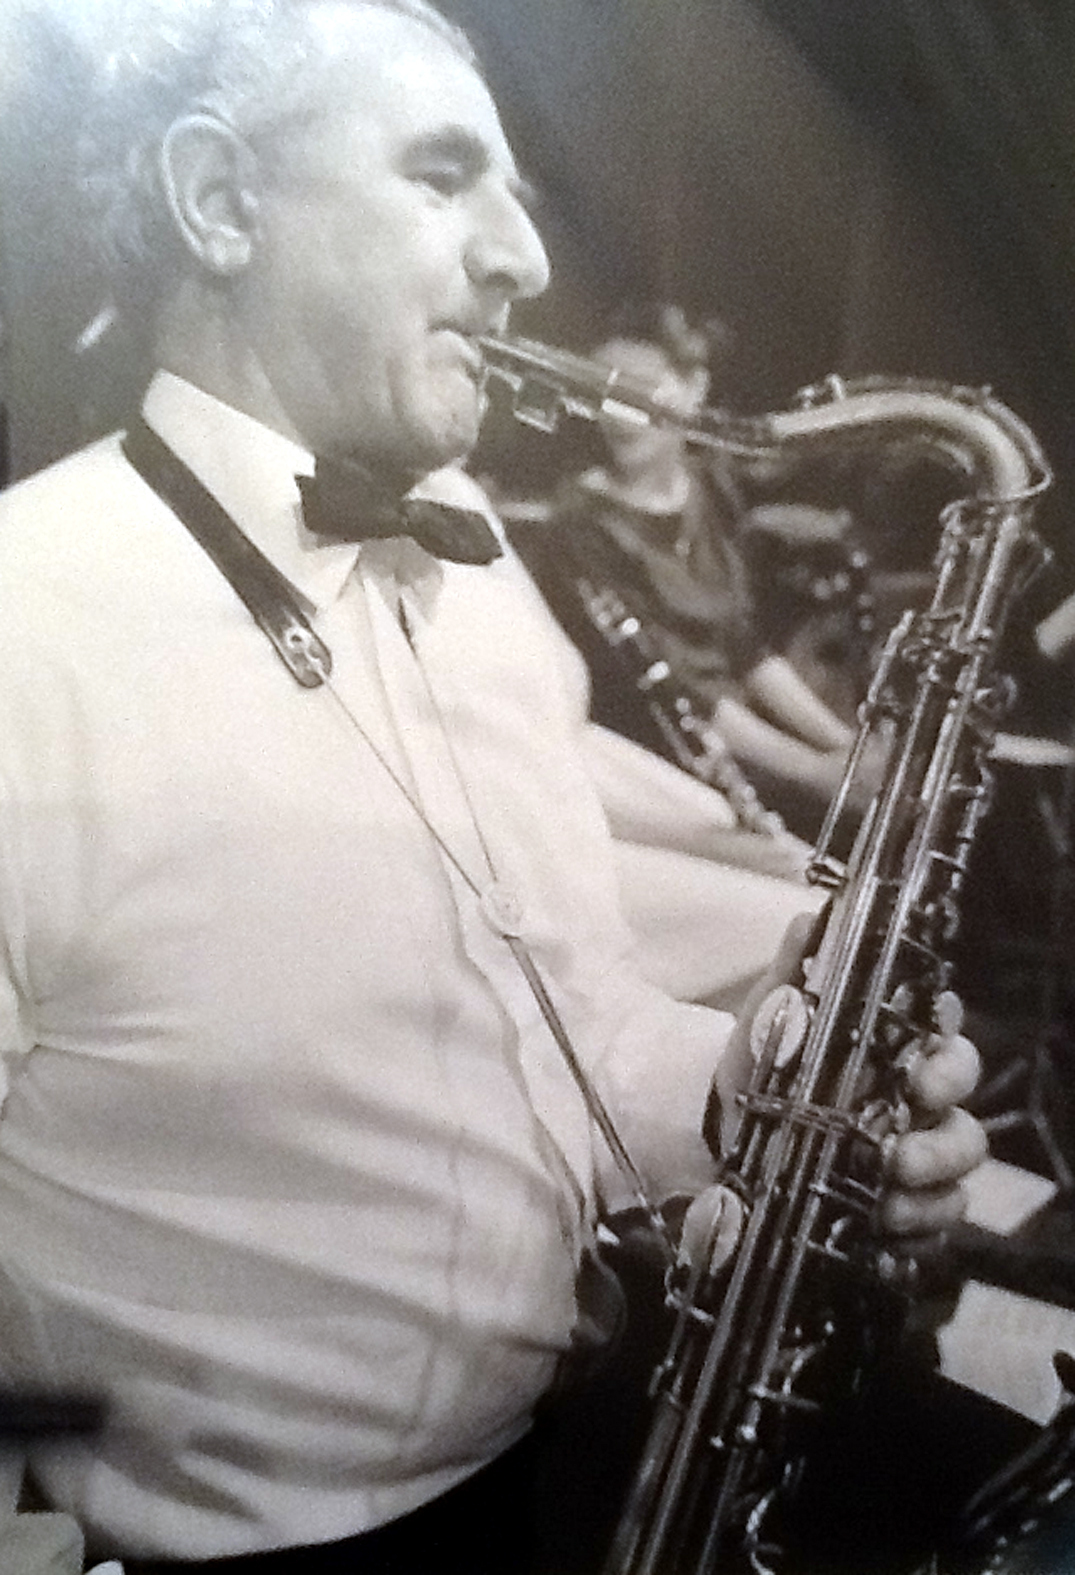 Geoff Gething was believed to be the last surviving member of the Palais de Danse band